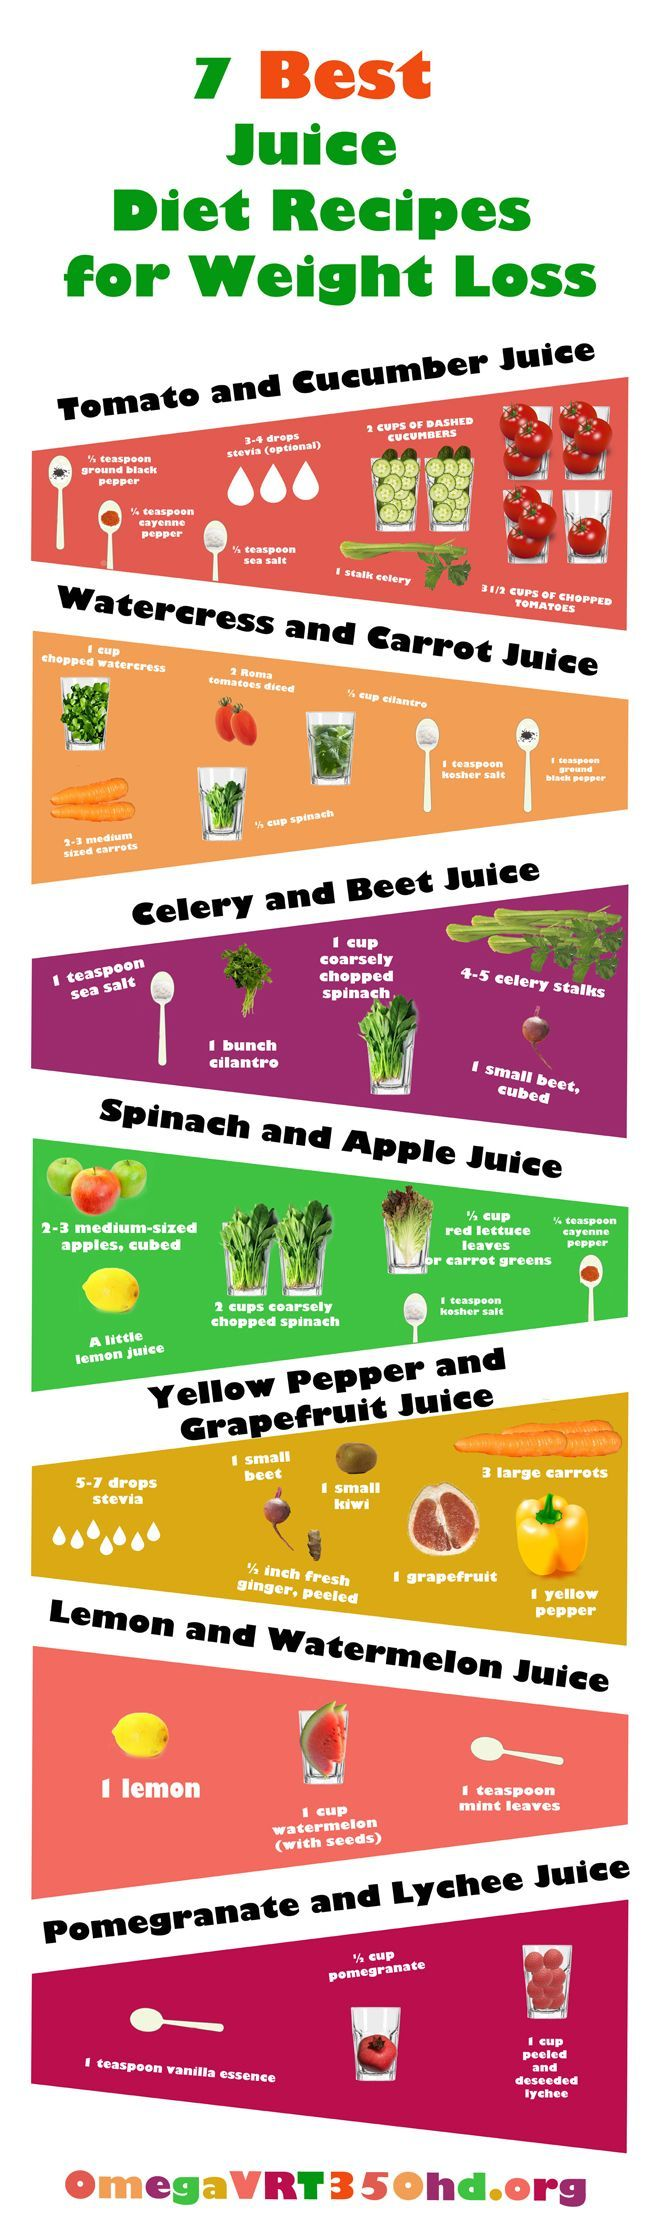 7 Simple Juicing Recipes for Weight Loss http://omegavrt350hd.org/juicing-recipes-for-weight-loss-infographic/